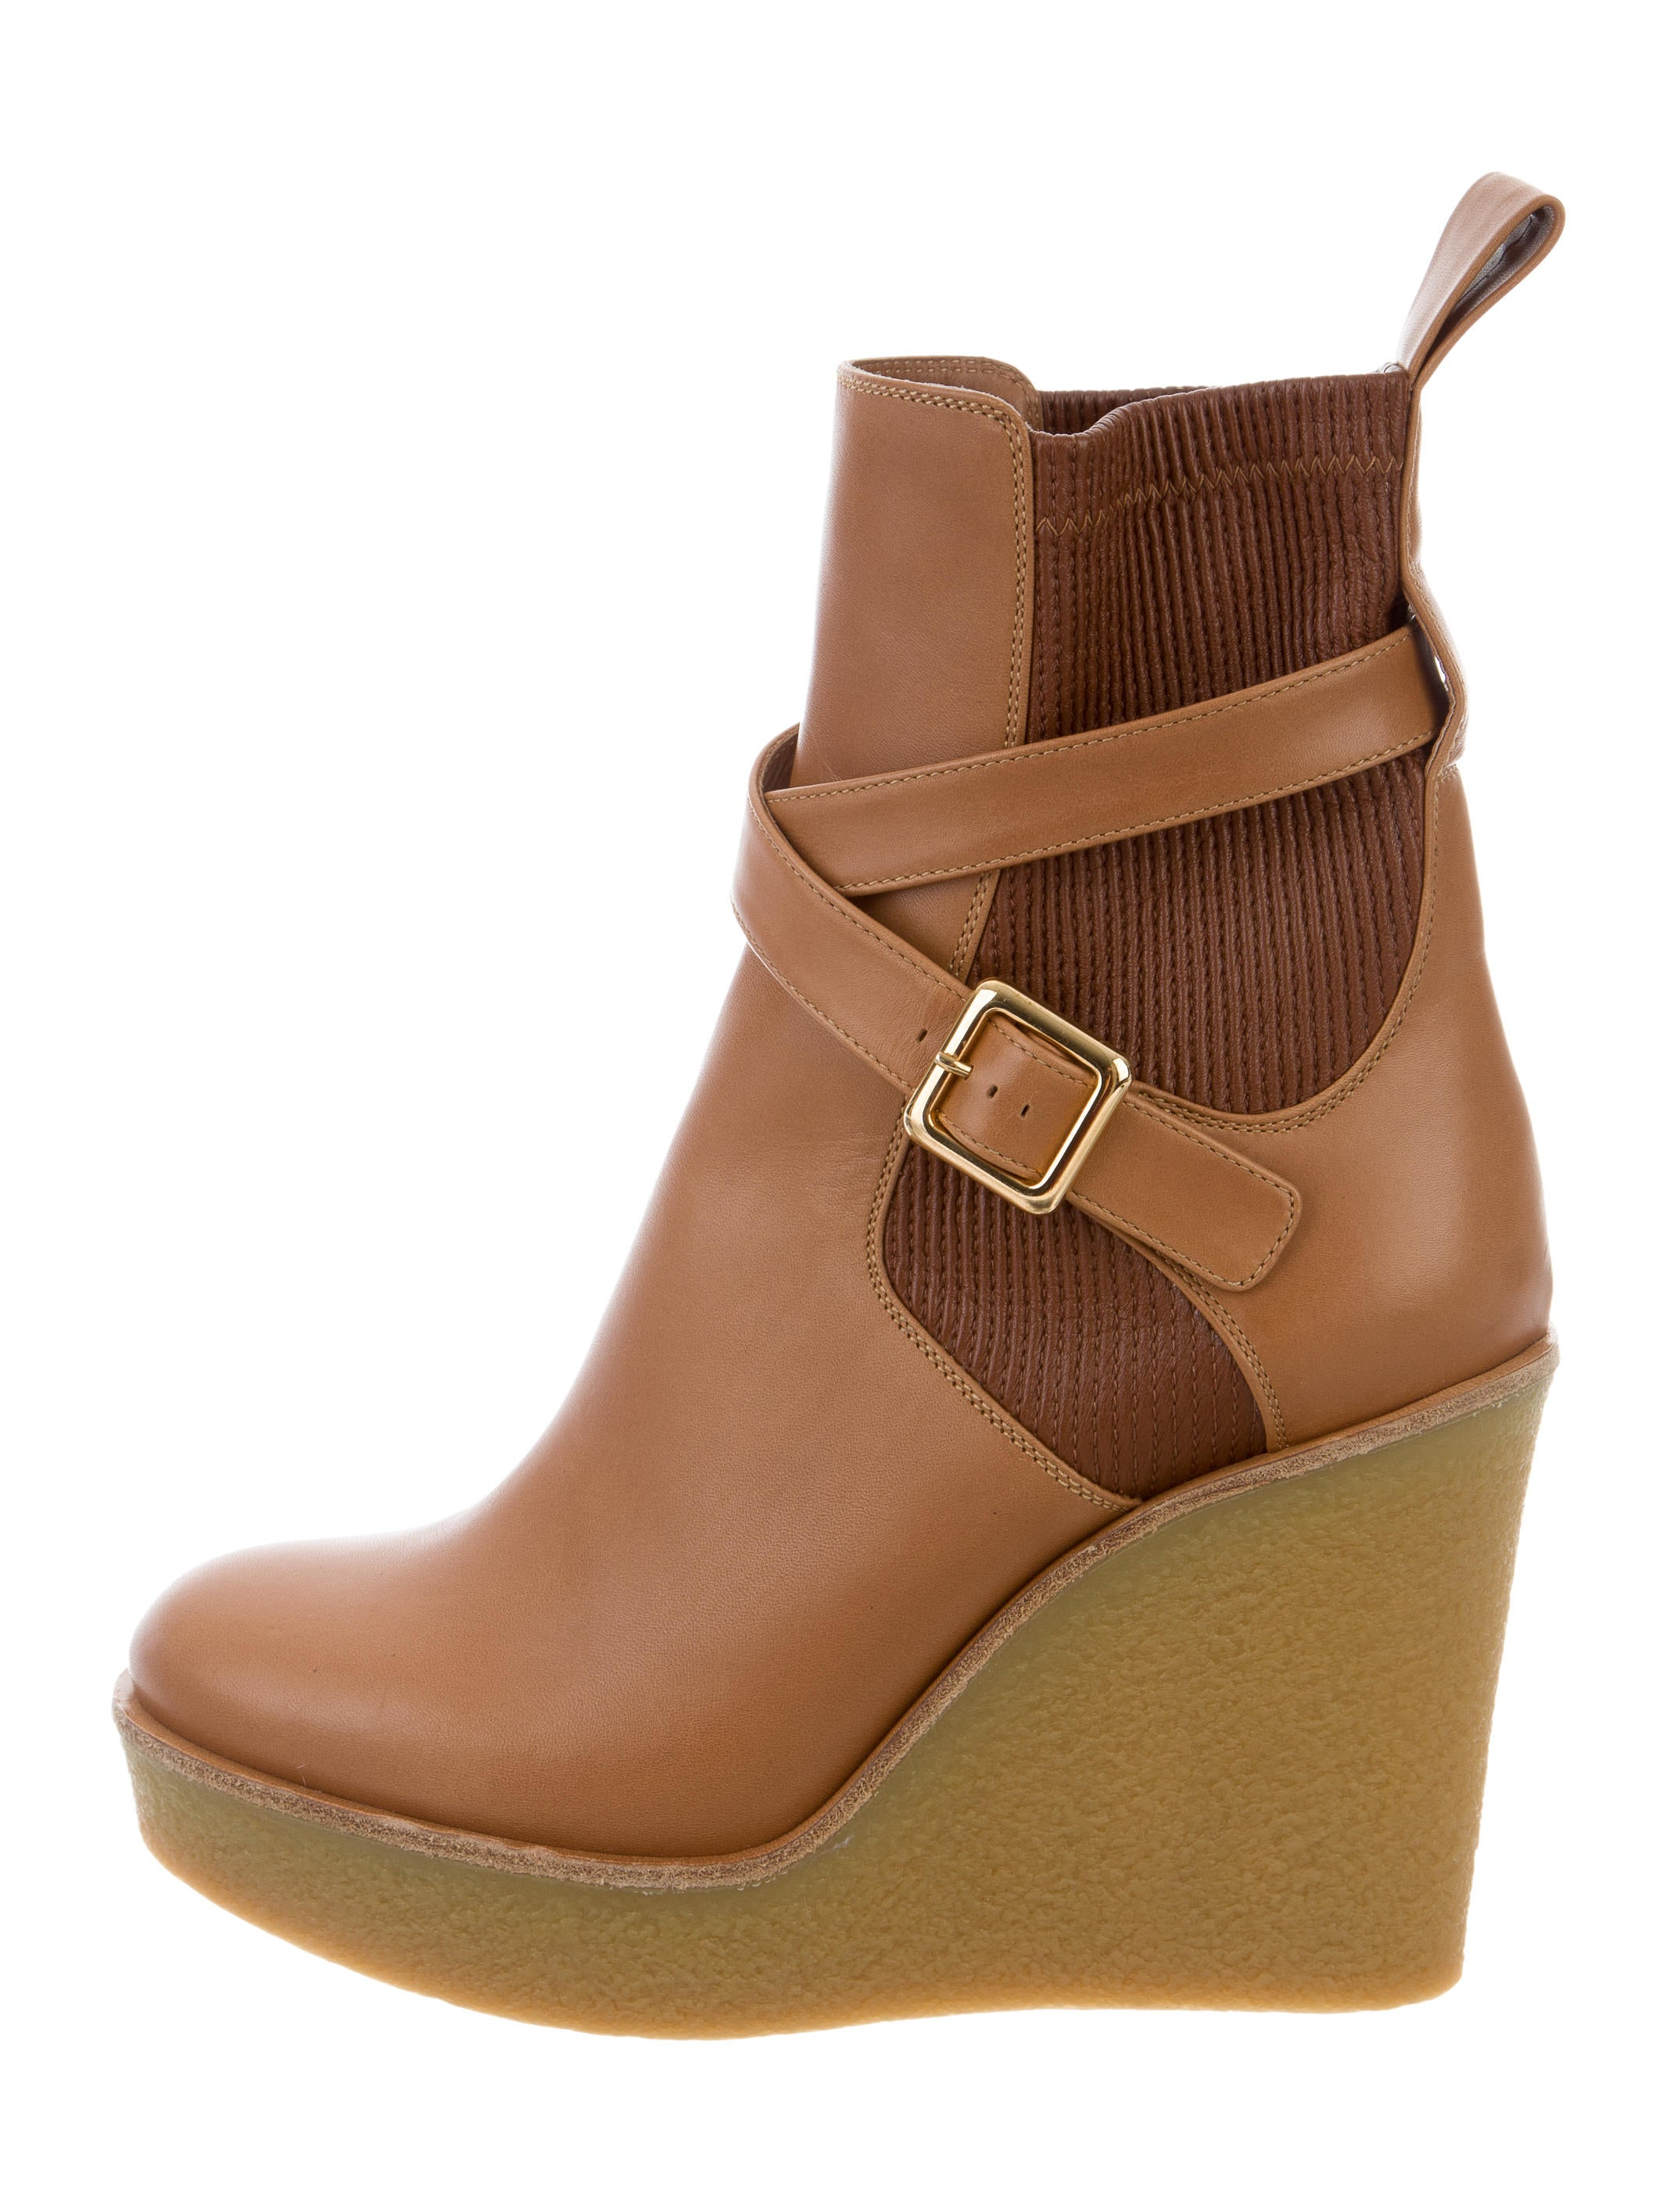 chlo 233 platform wedge ankle boots shoes chl62376 the